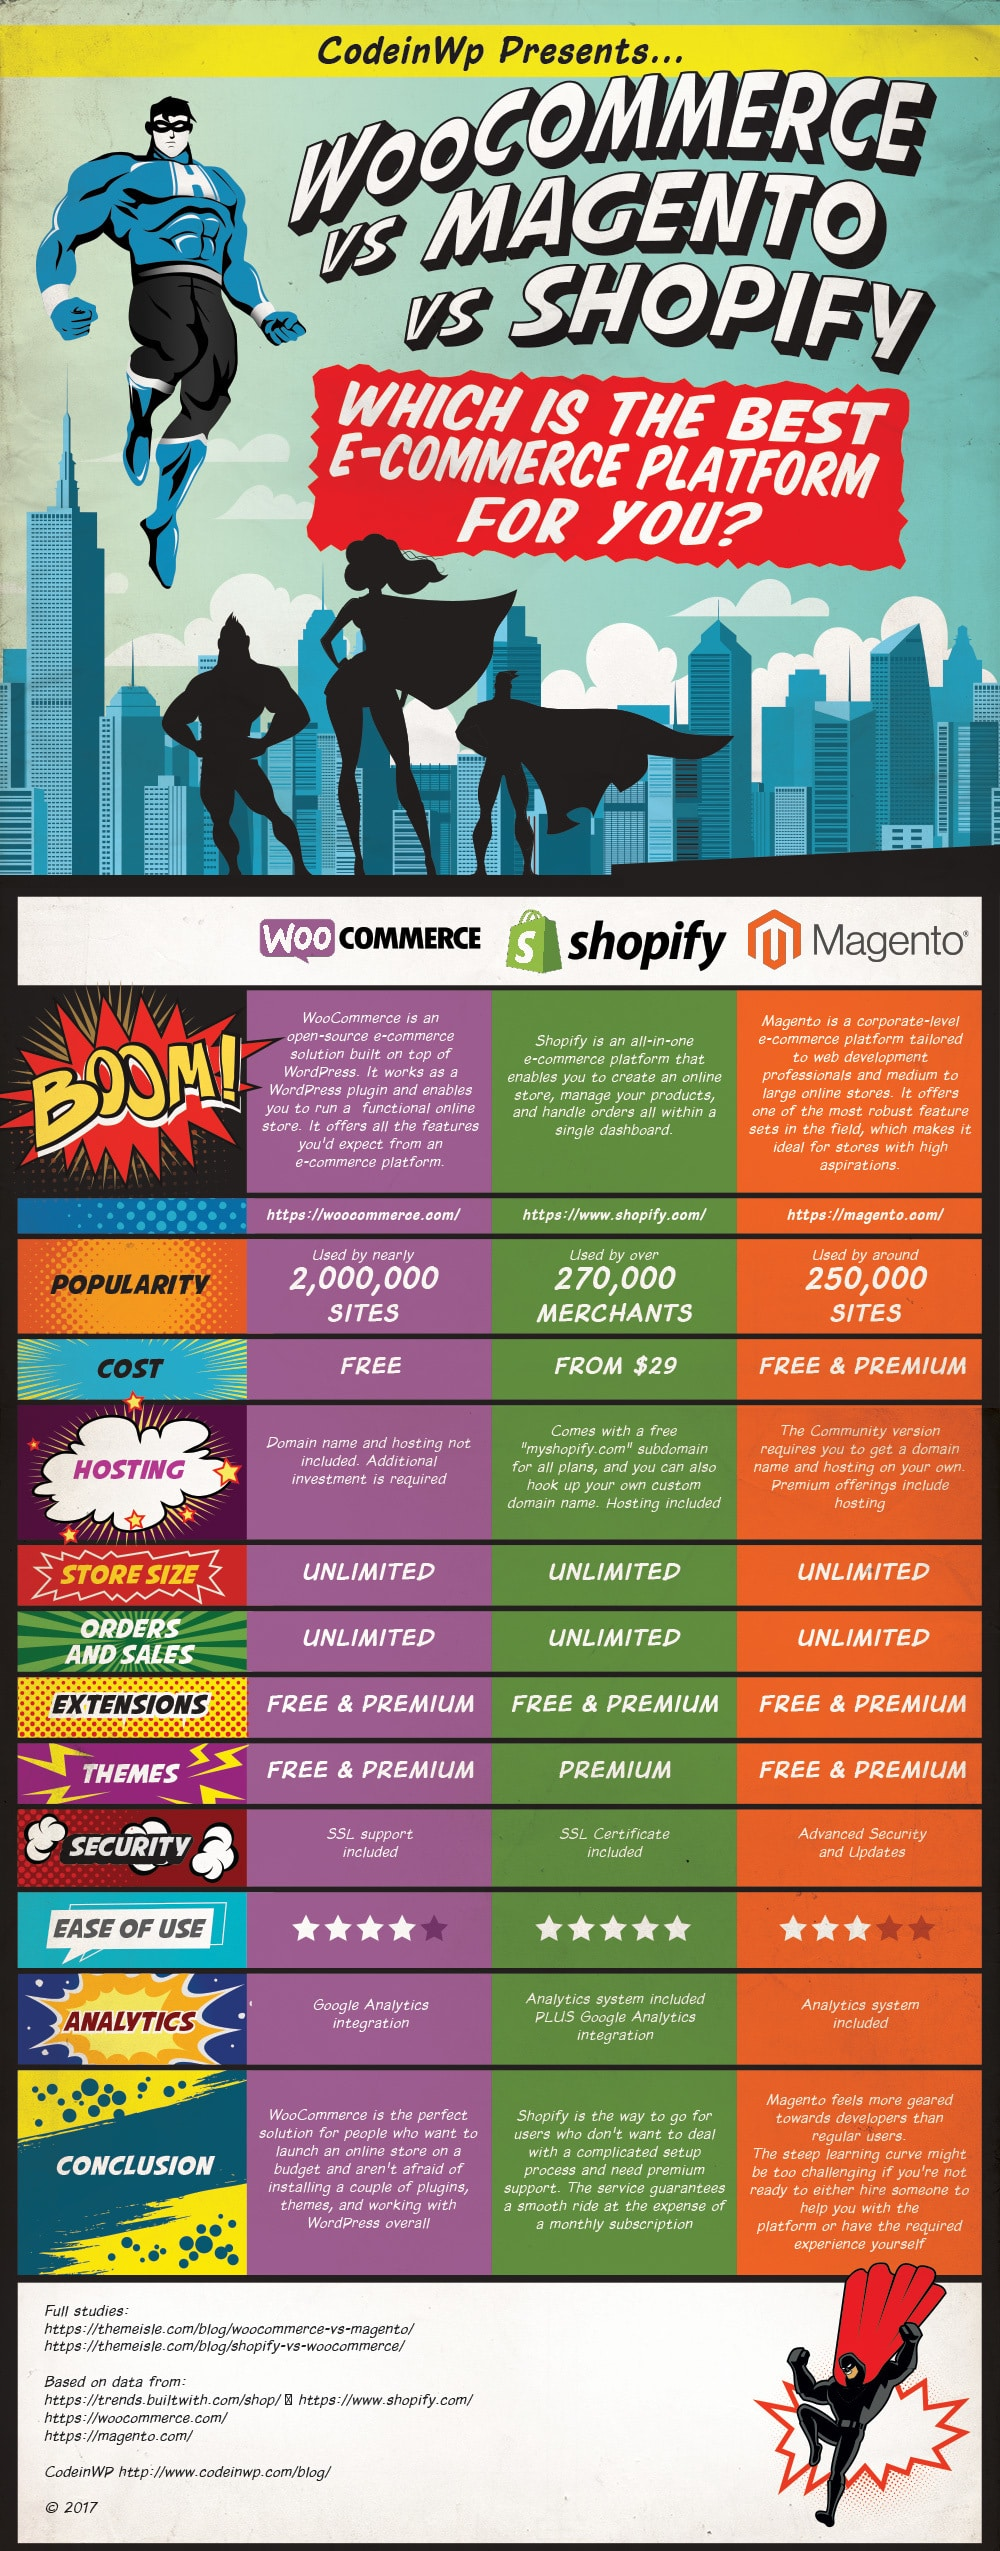 INFOGRAPHIC: WooCommerce vs Magento vs Shopify by CodeinWP.com